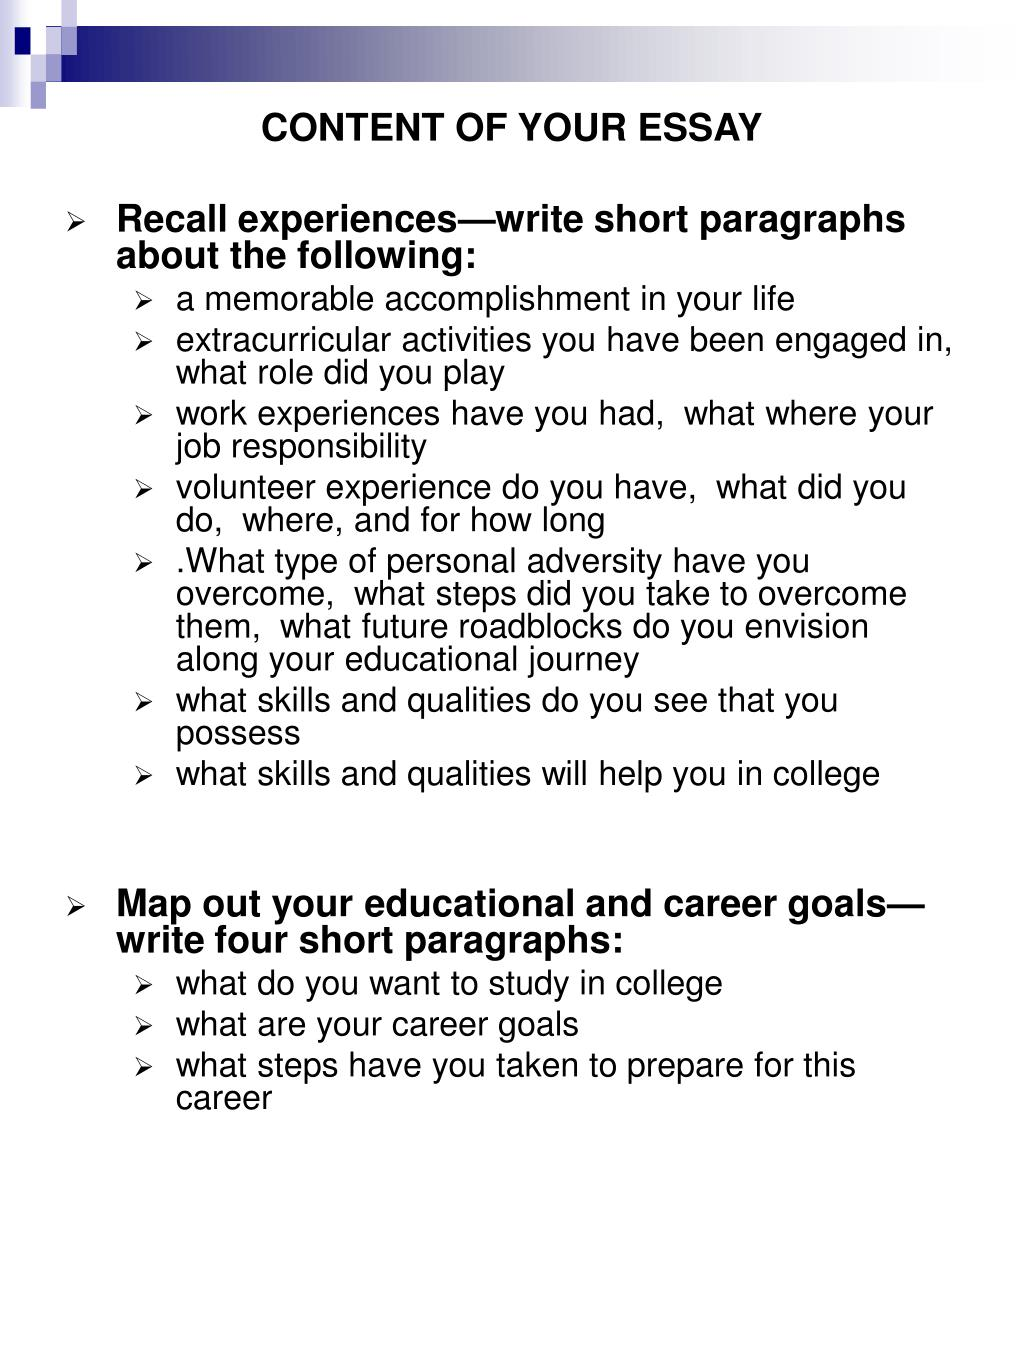 CONTENT OF YOUR ESSAY